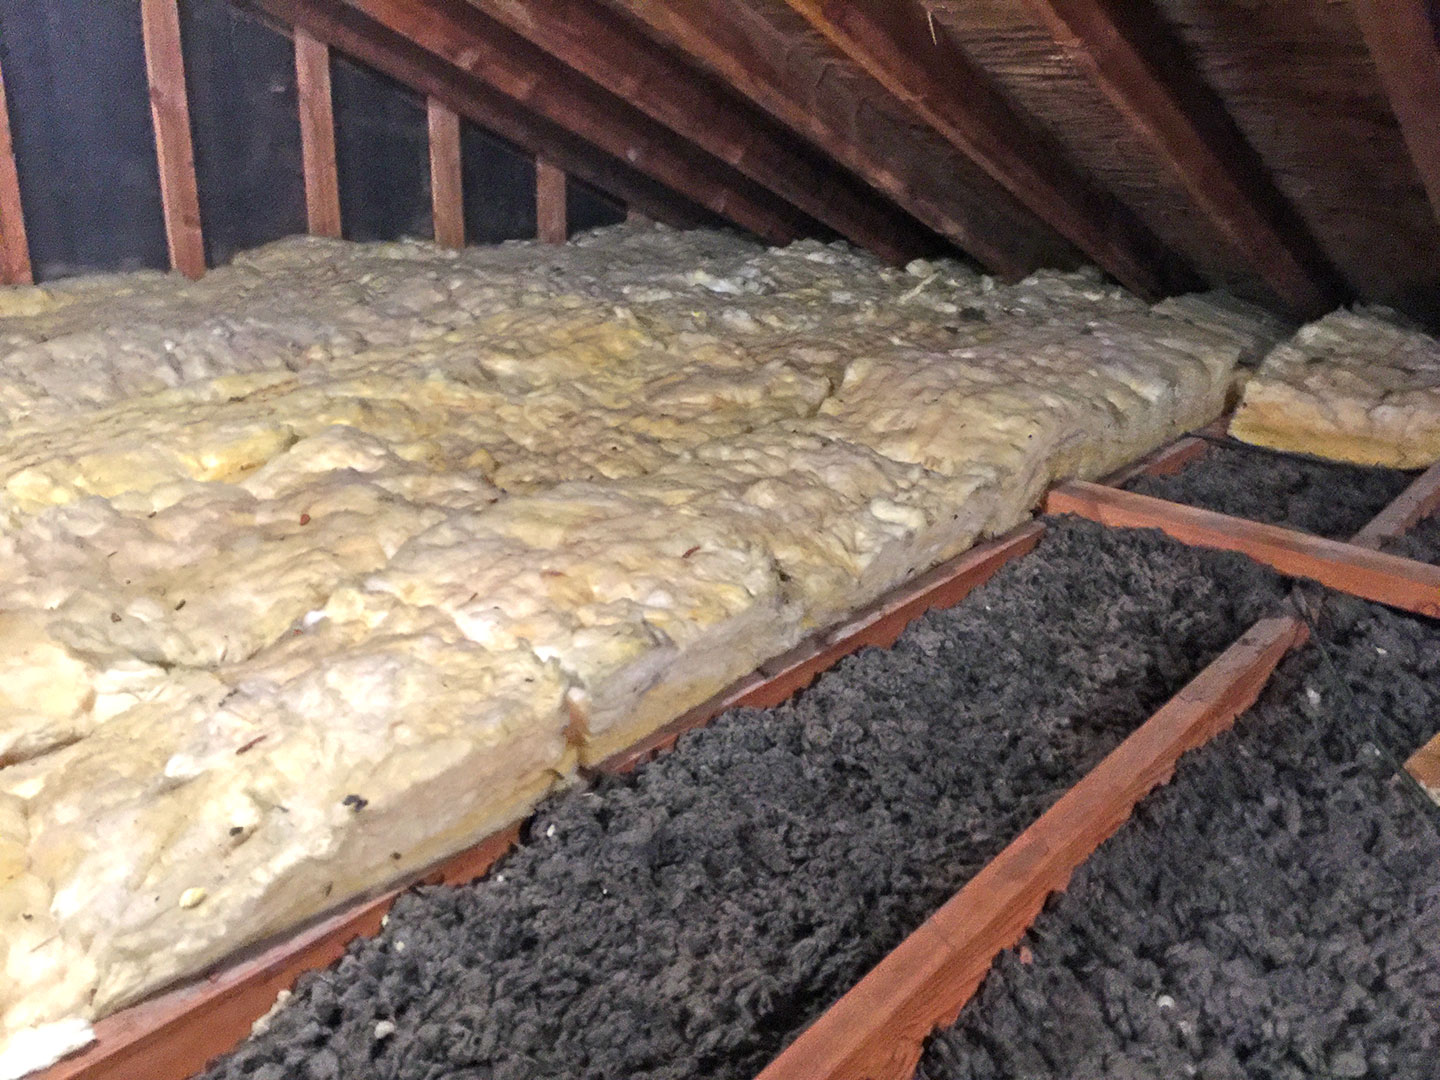 At one point batt insulation was added over the blown-in insulation to help improve the comfort of the home, when in fact there are air gaps between the rolls where they sit next to each other allowing heat to continue escaping.